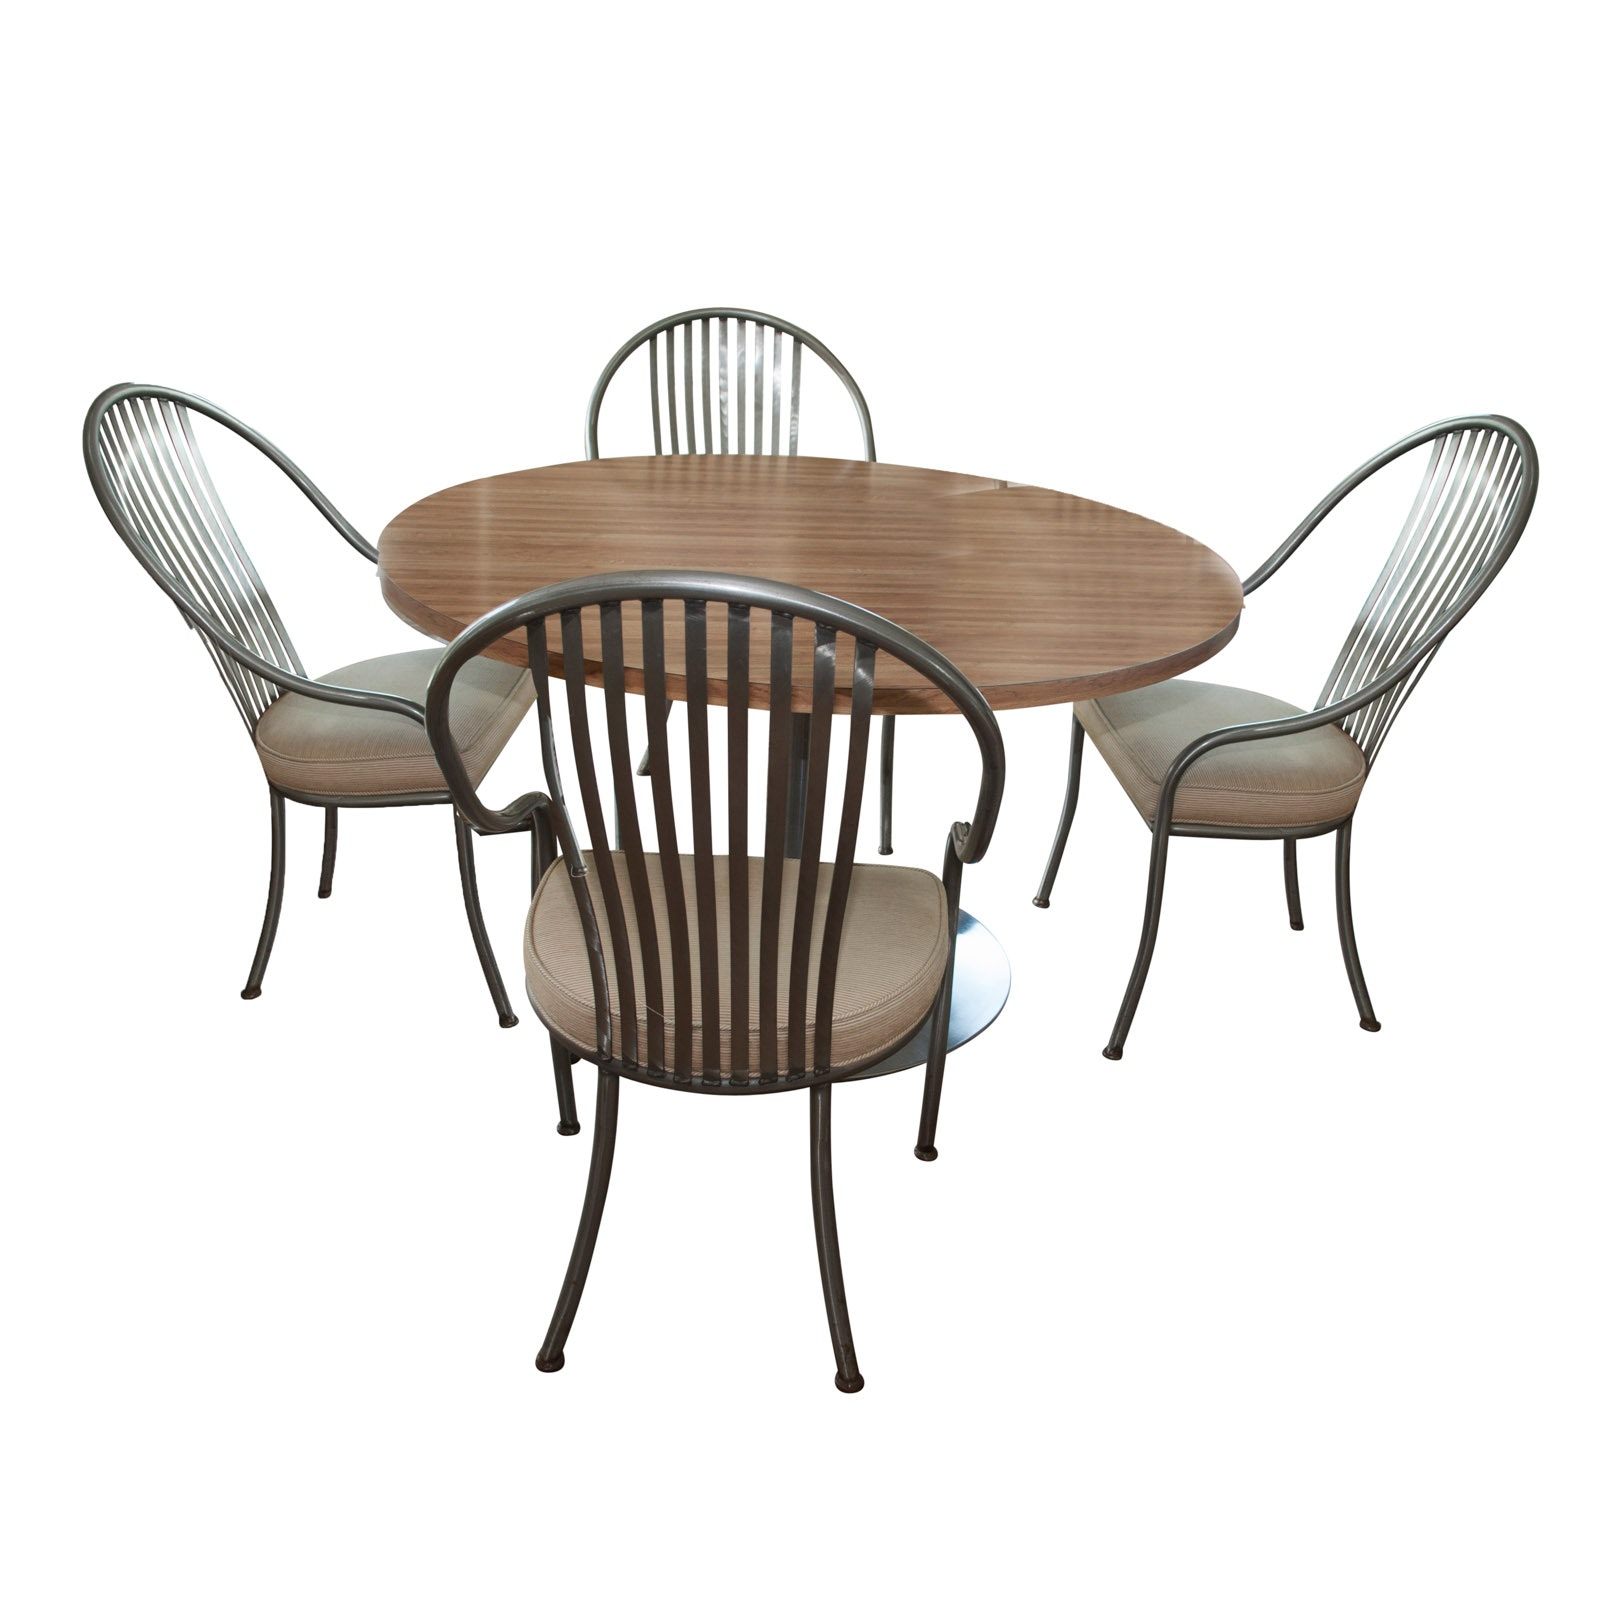 Contemporary Dining Table with Four Chairs